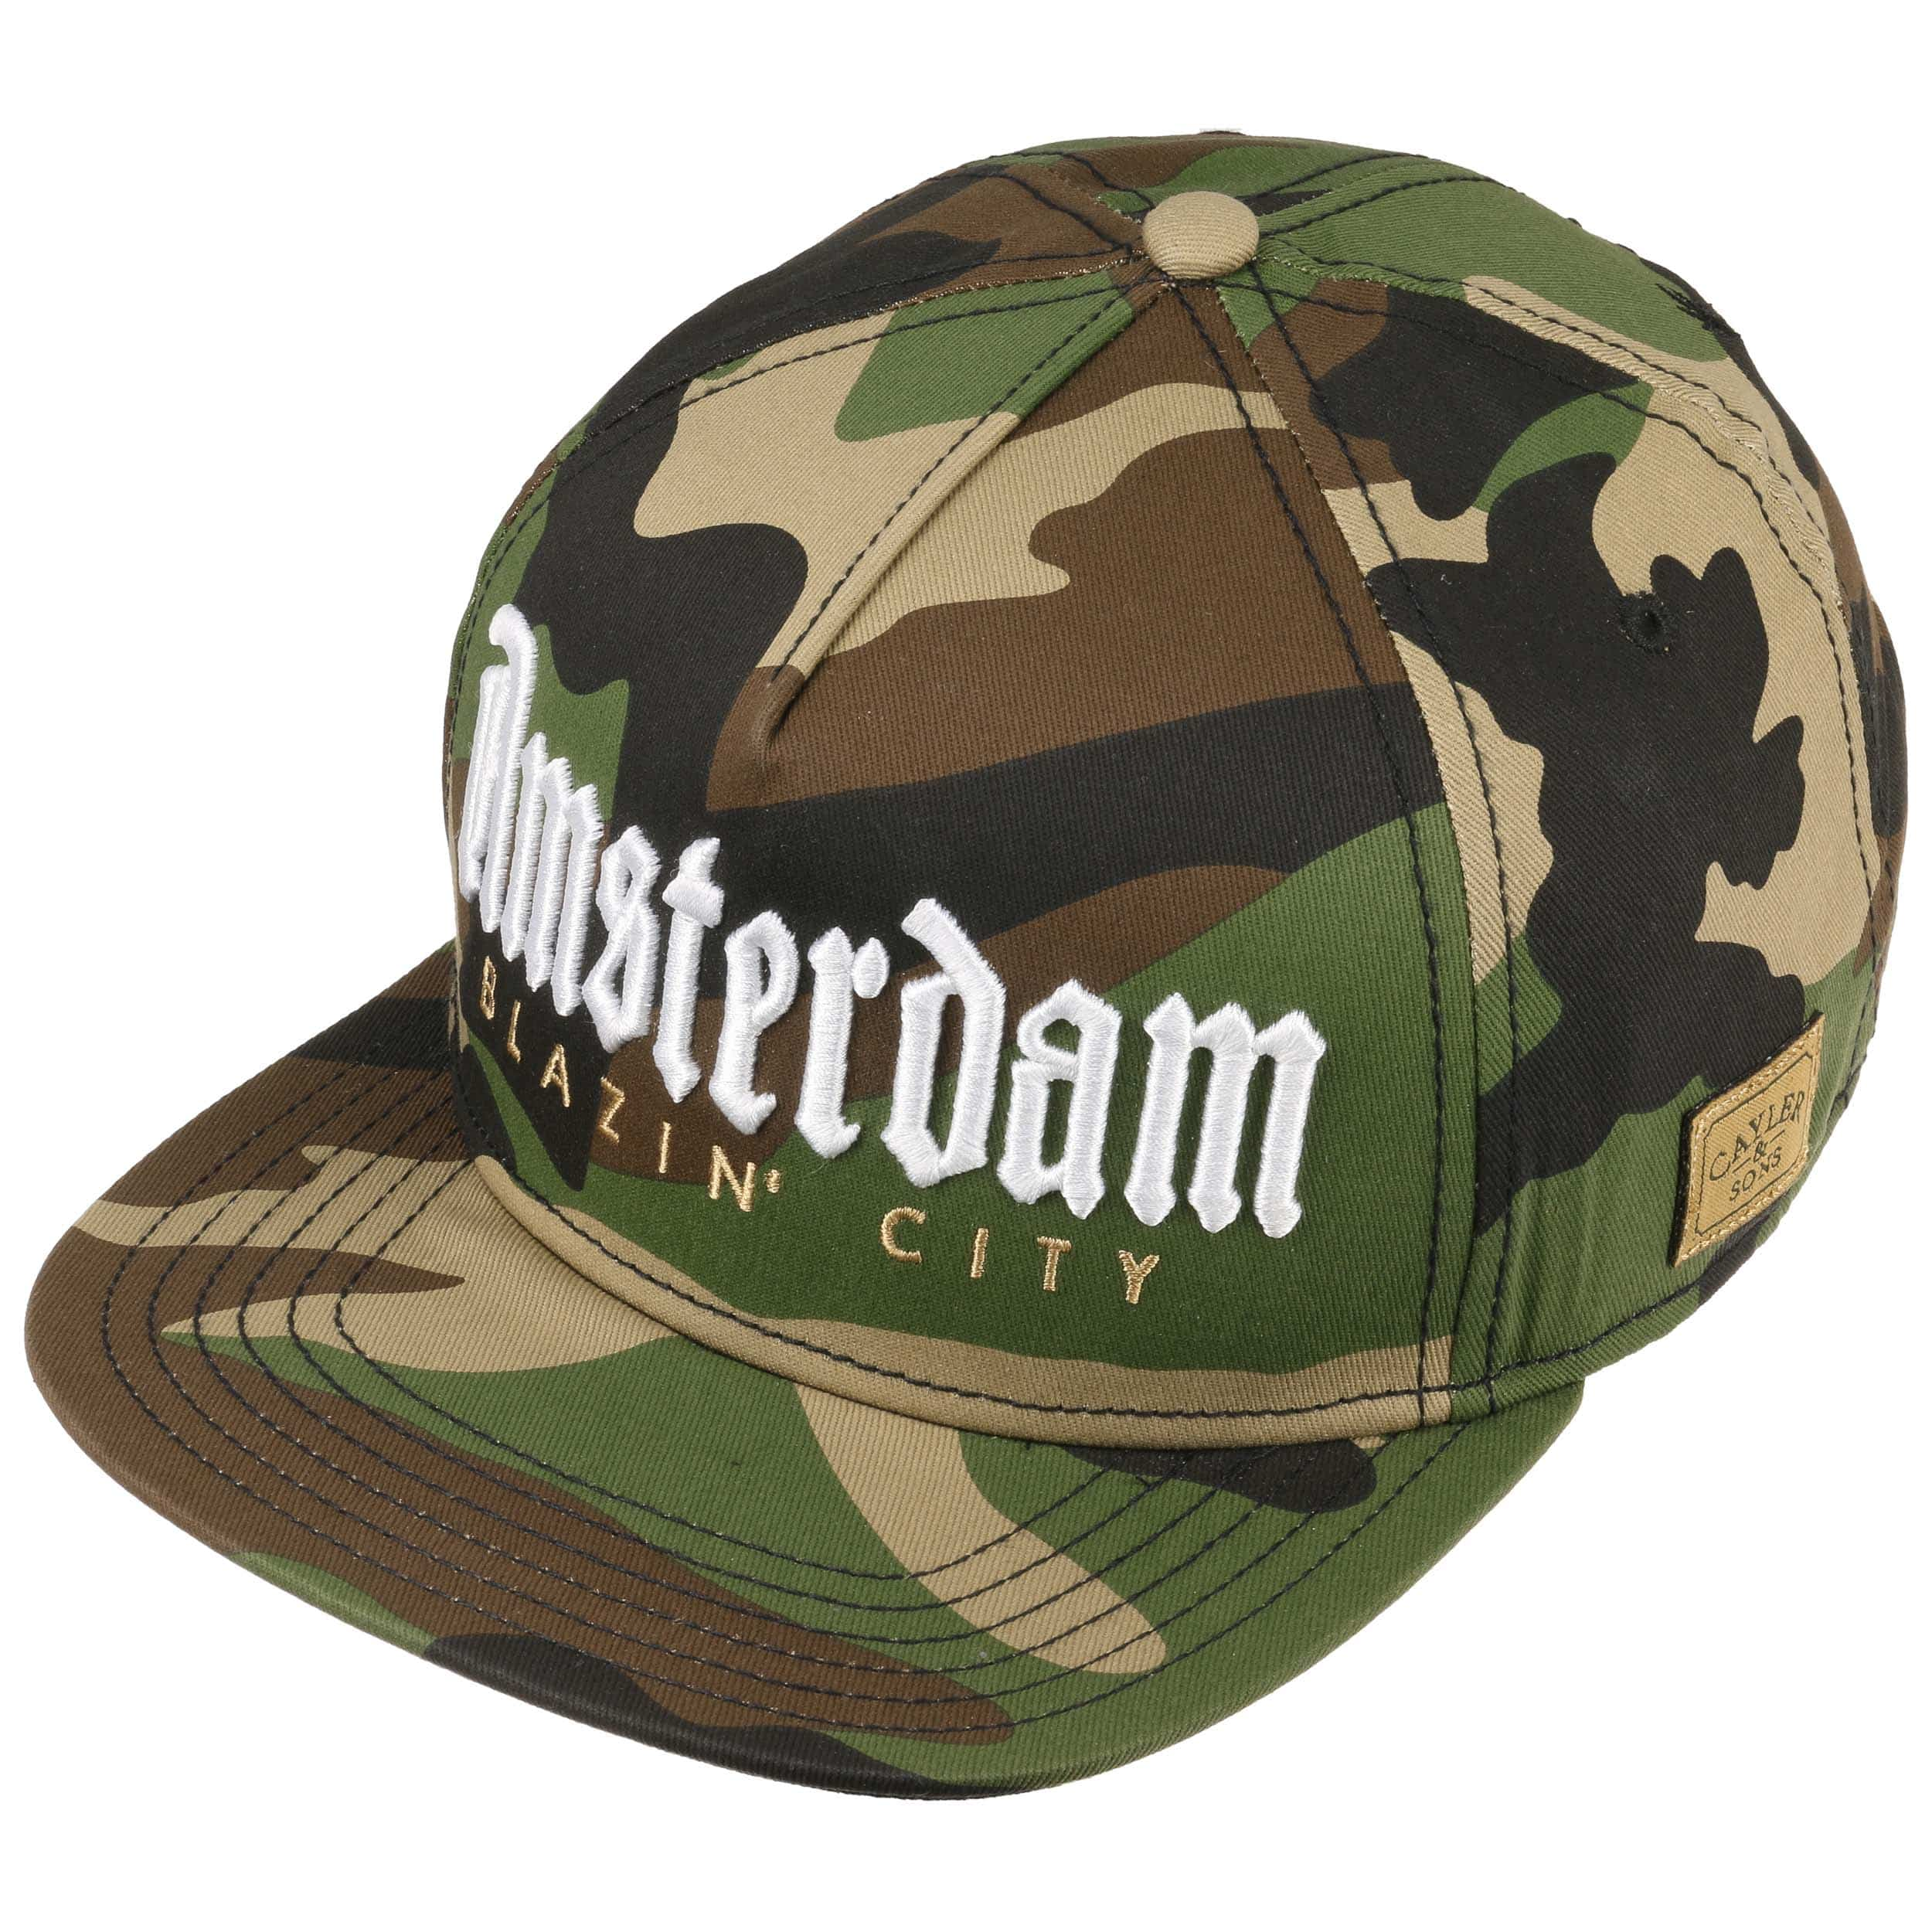 ... blu 1 · Cappellino Amsterdam by Cayler   Sons - camouflage 1 ... 62bf1ebb2519